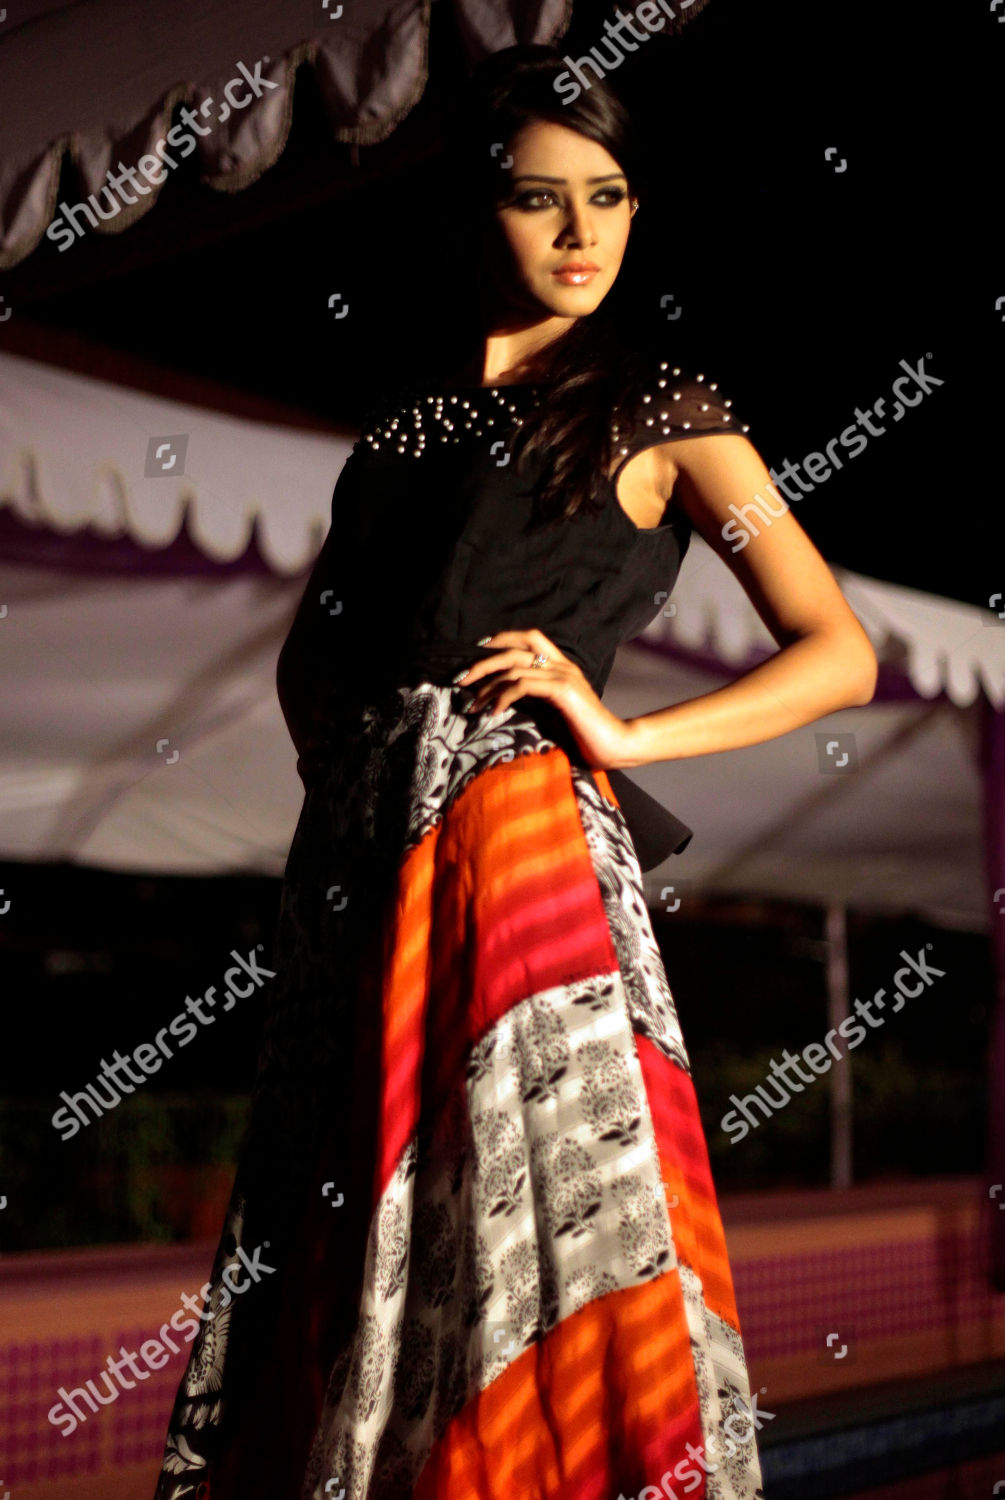 This Model Showcases Outfit Bangladeshi Designer During Editorial Stock Photo Stock Image Shutterstock